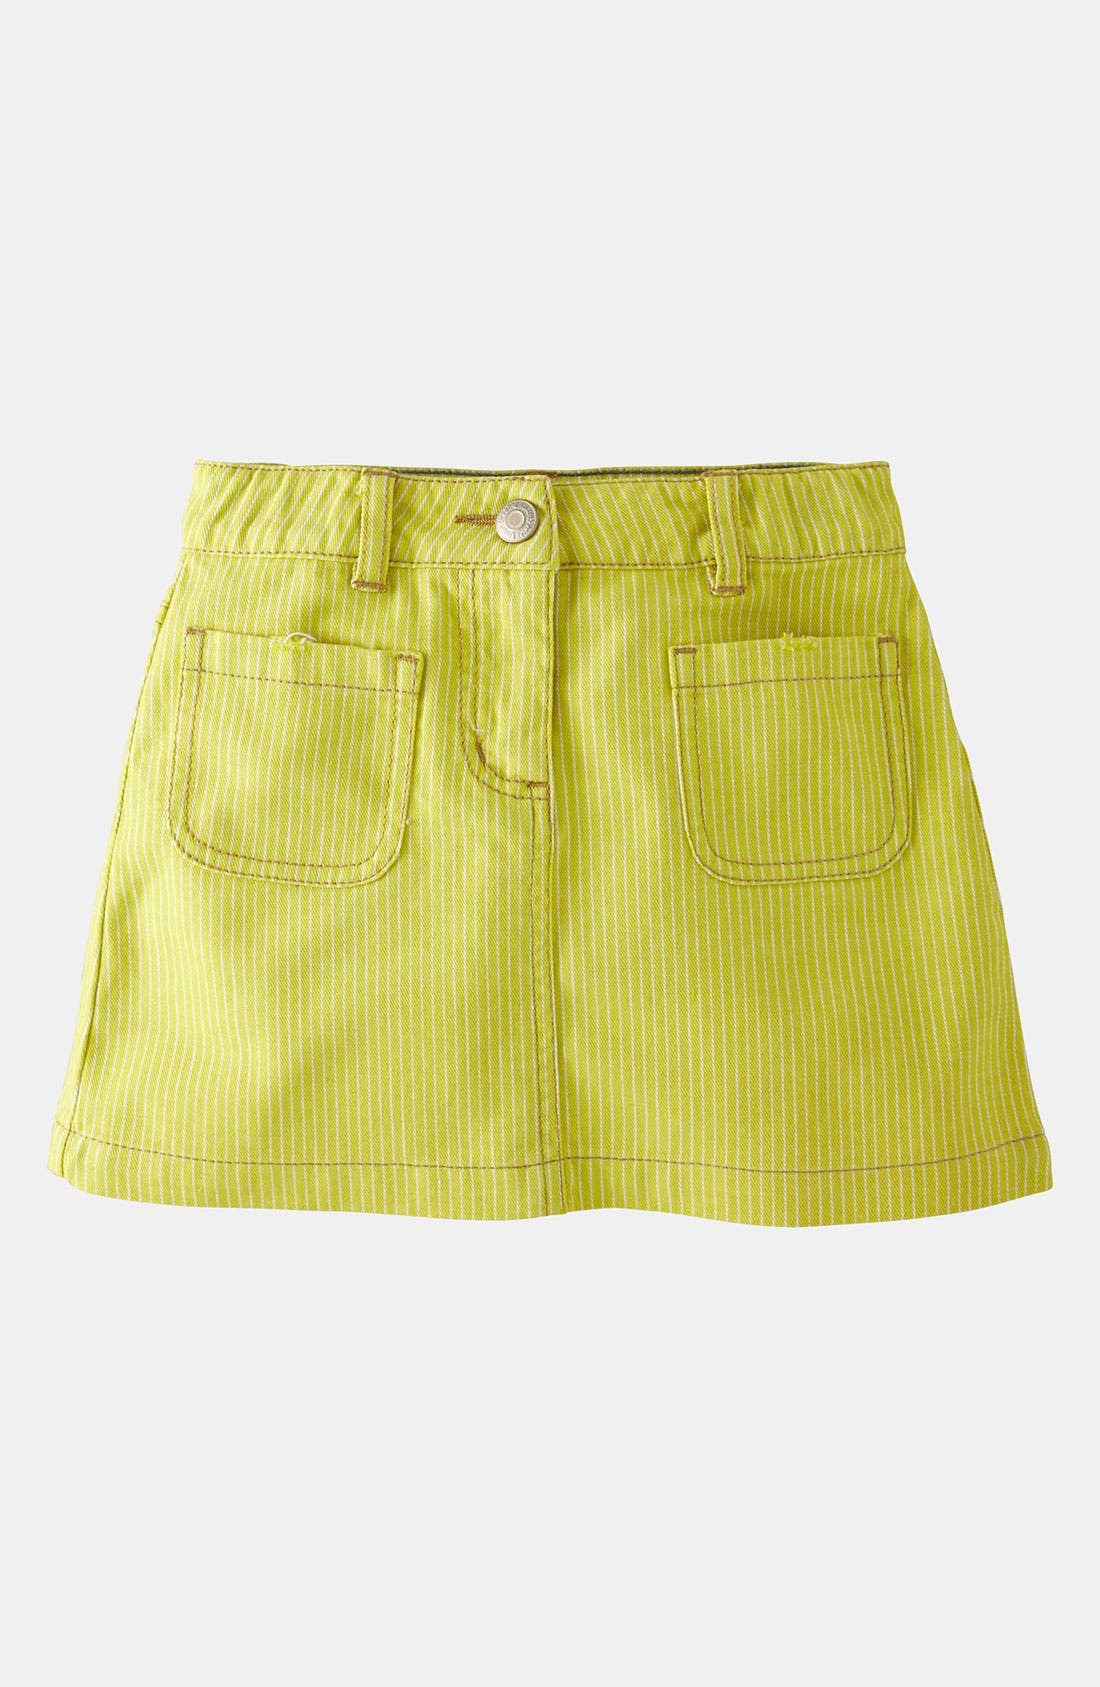 Main Image - Mini Boden 'Patch Pocket' Skirt (Little Girls & Big Girls)